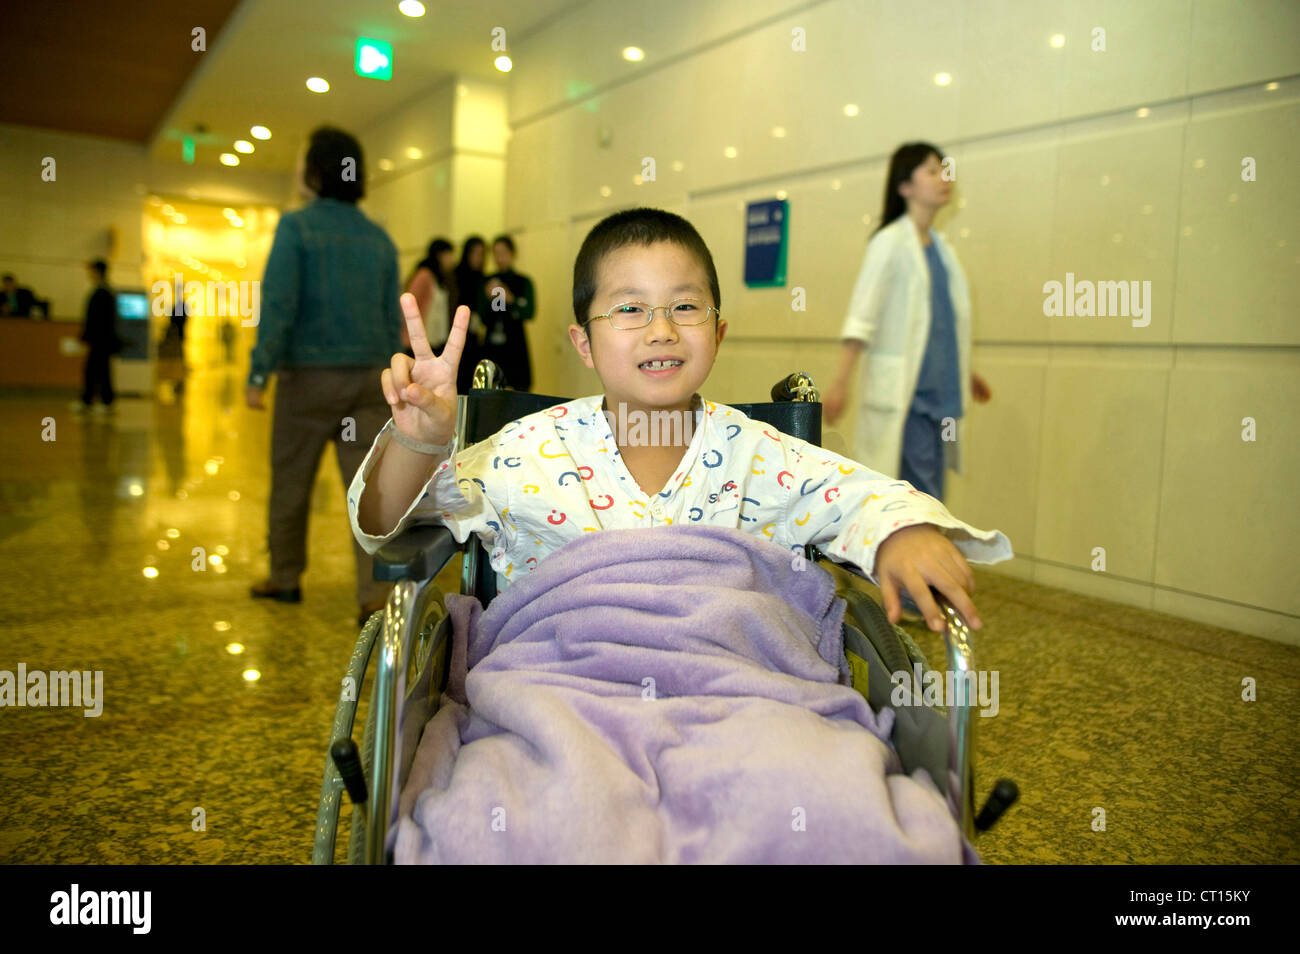 A young boy who is being treated at the Samsung Cancer Centre in Seoul, South Korea. - Stock Image